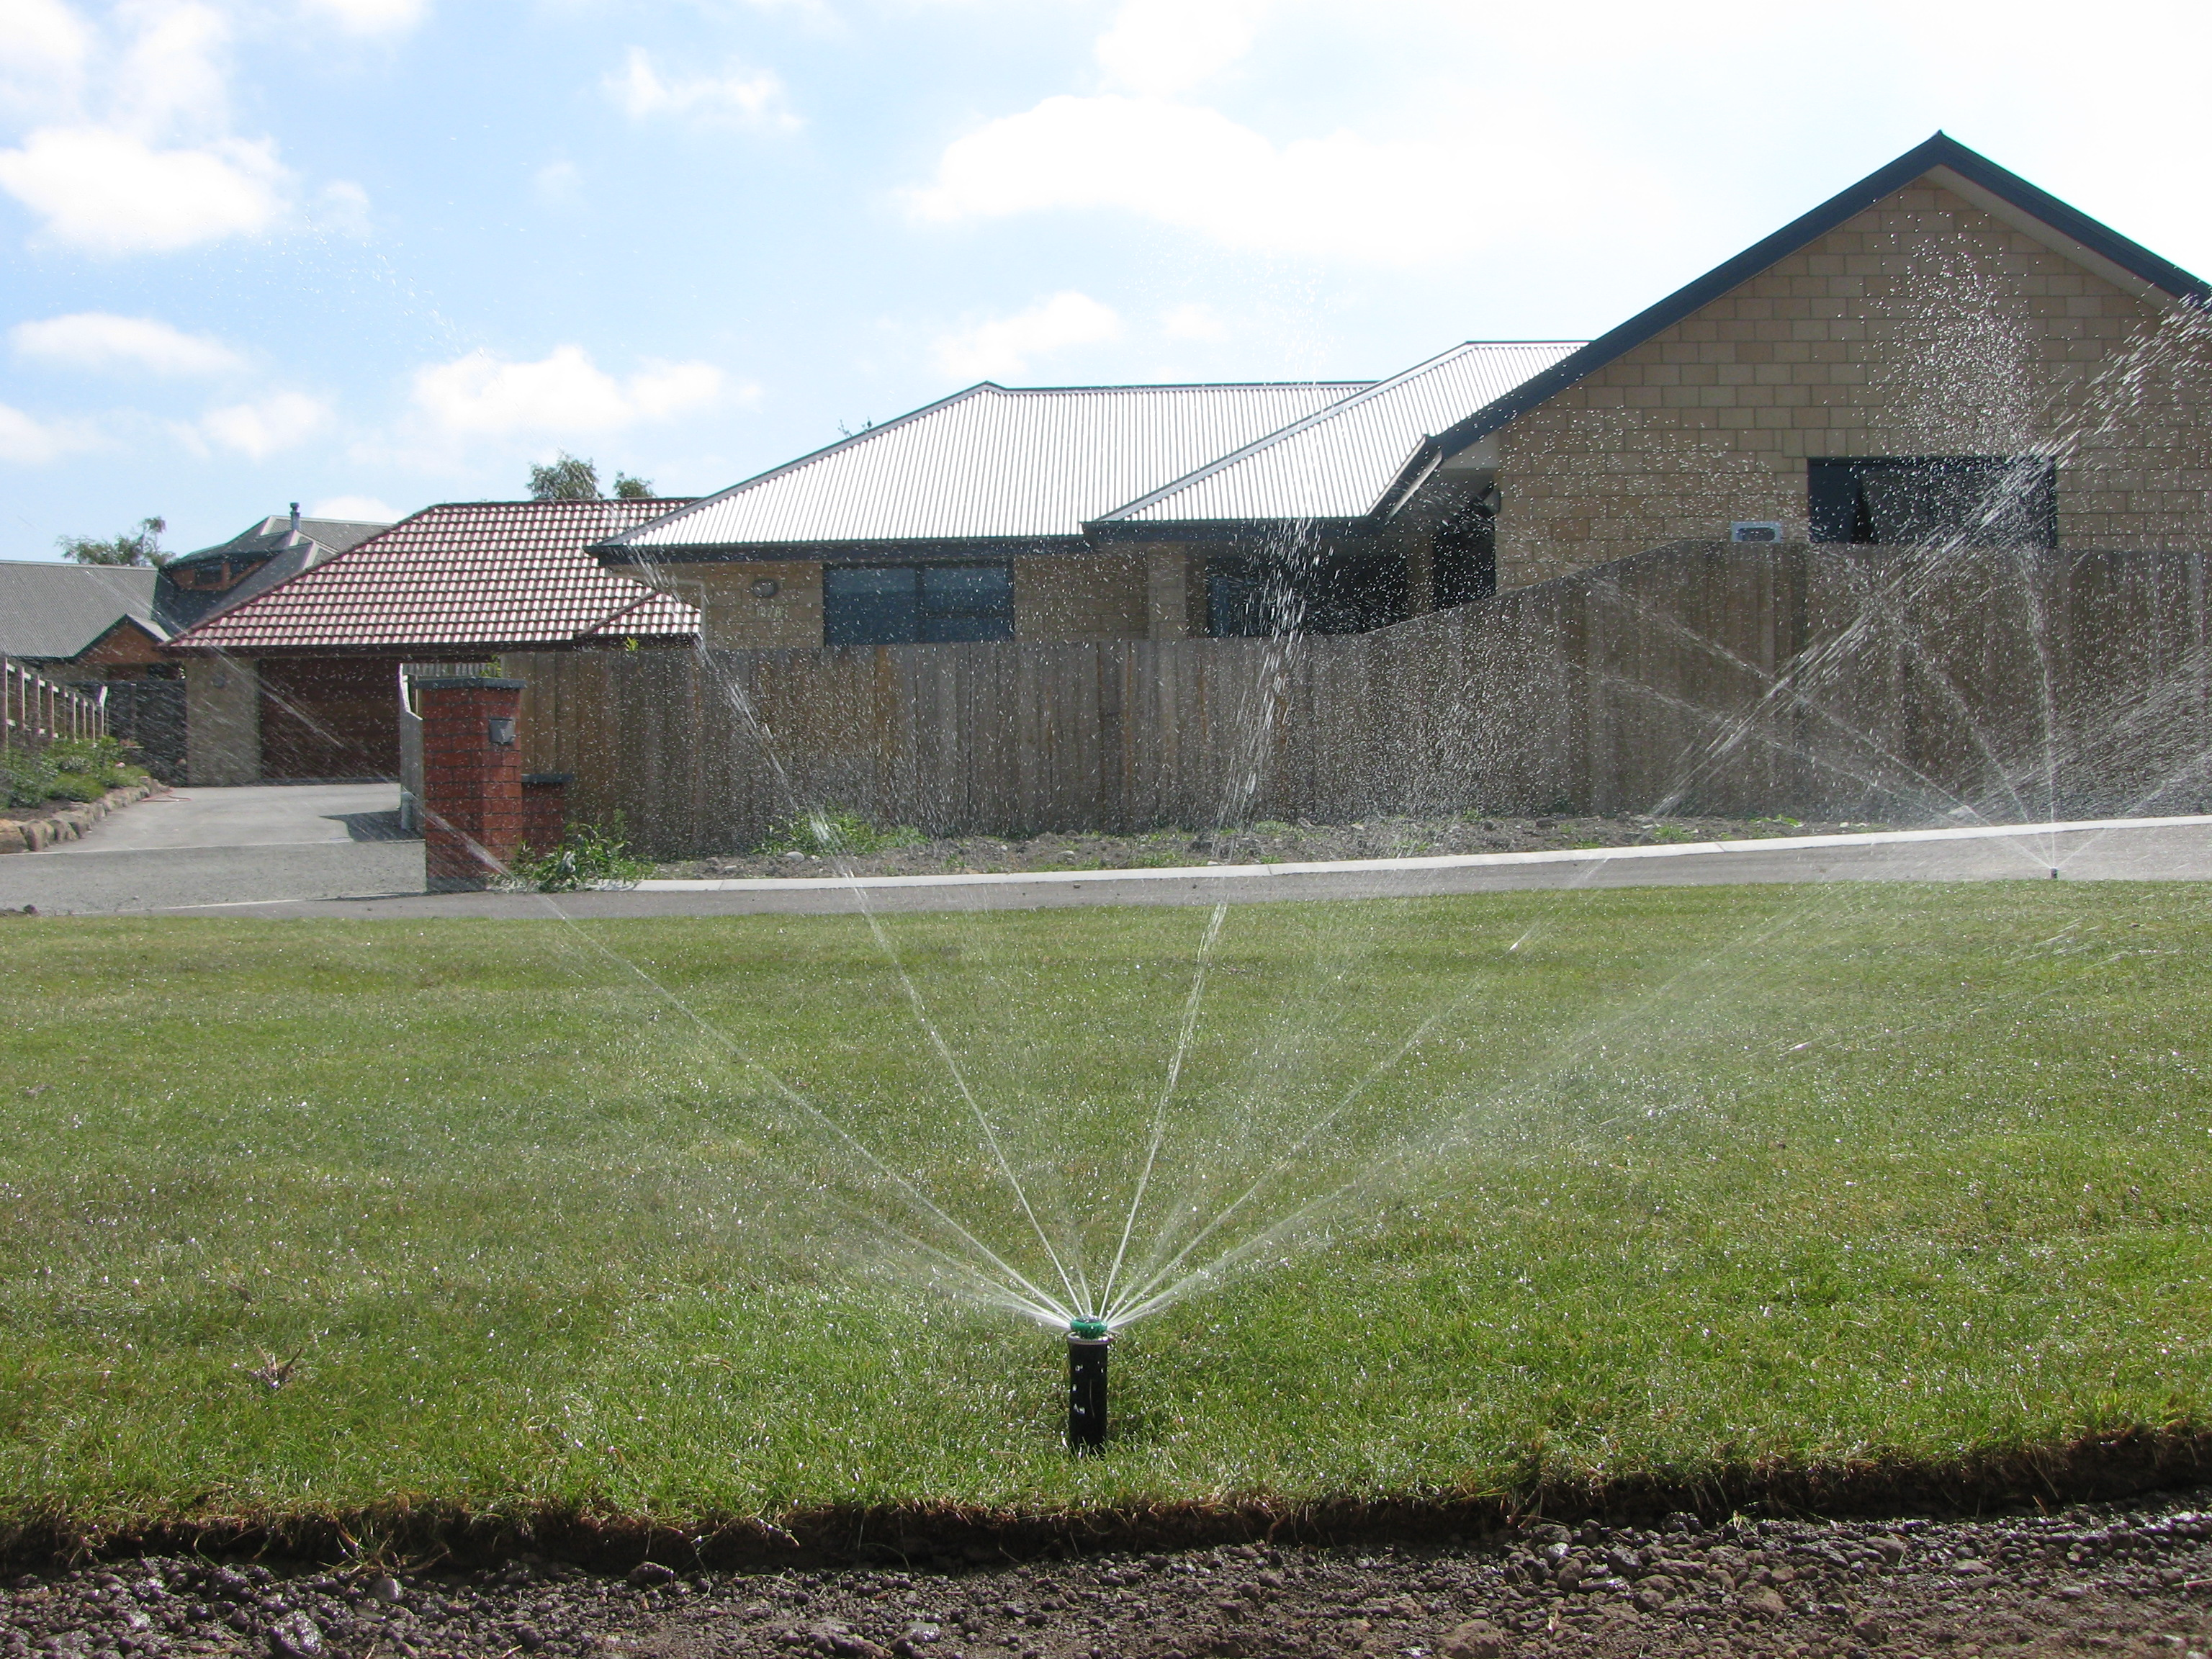 Irrigation/Watering Systems